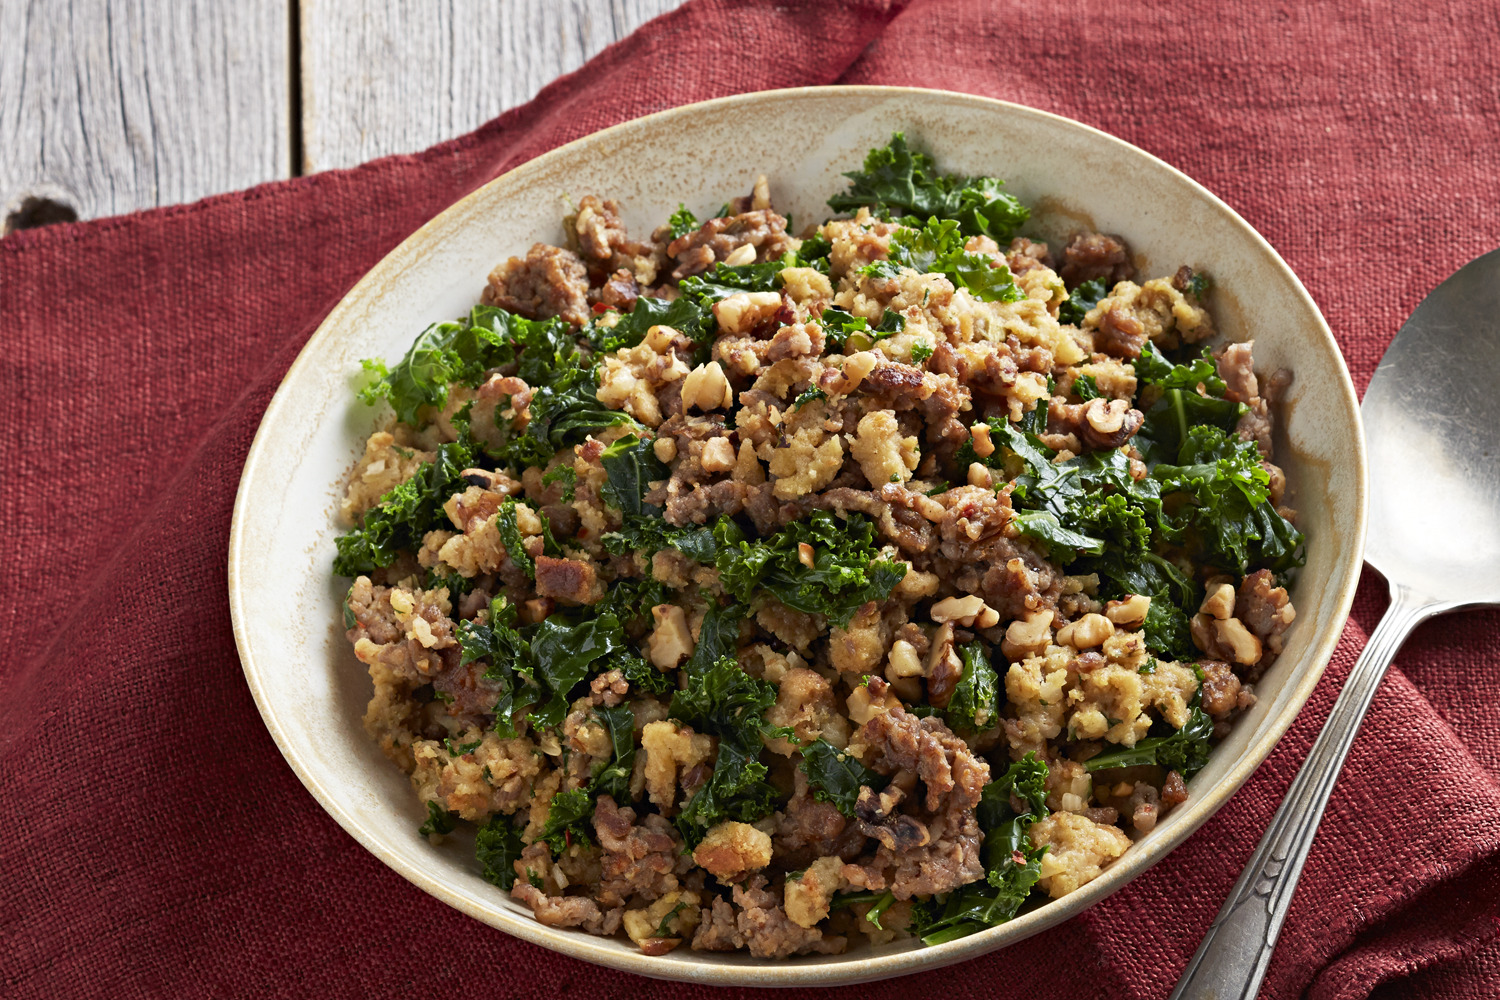 Italian Sausage and Kale Stuffing Image 2